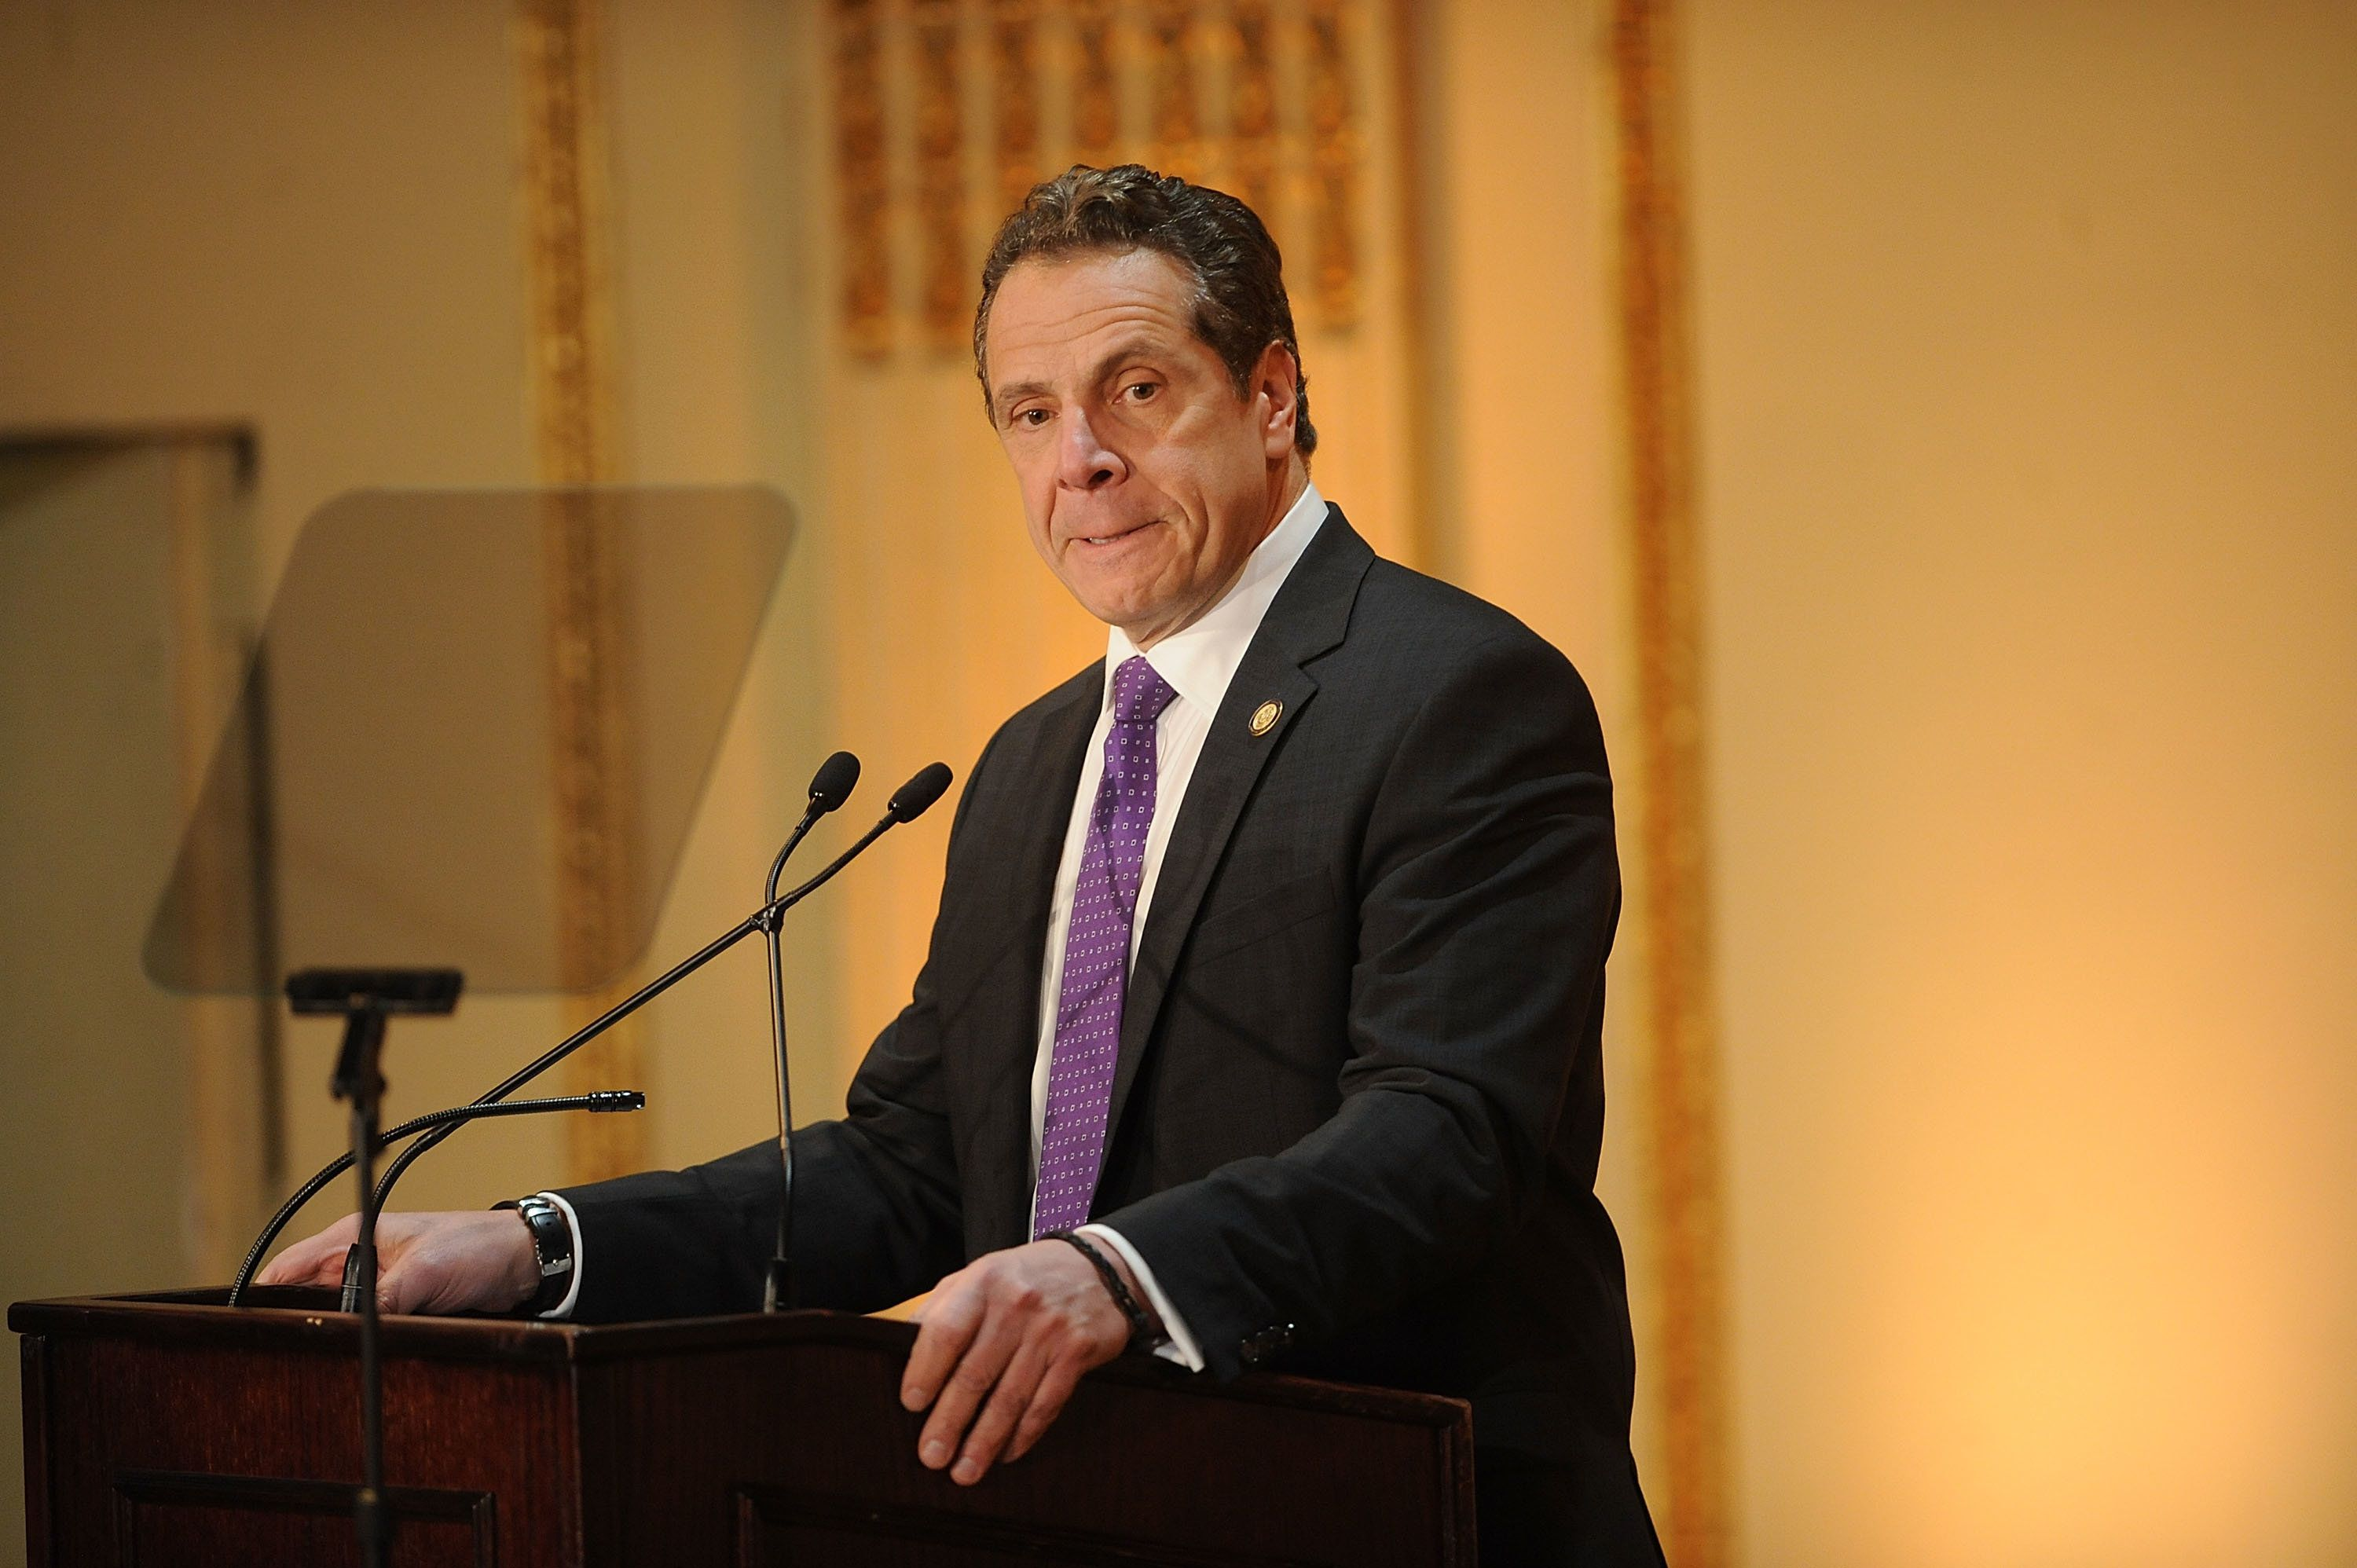 NEW YORK, NY - MARCH 16:  New York State Governor Andrew Cuomo attends the  Help USA 30th Anniversary Luncheon at The Plaza Hotel on March 16, 2017 in New York City.  (Photo by Brad Barket/WireImage)